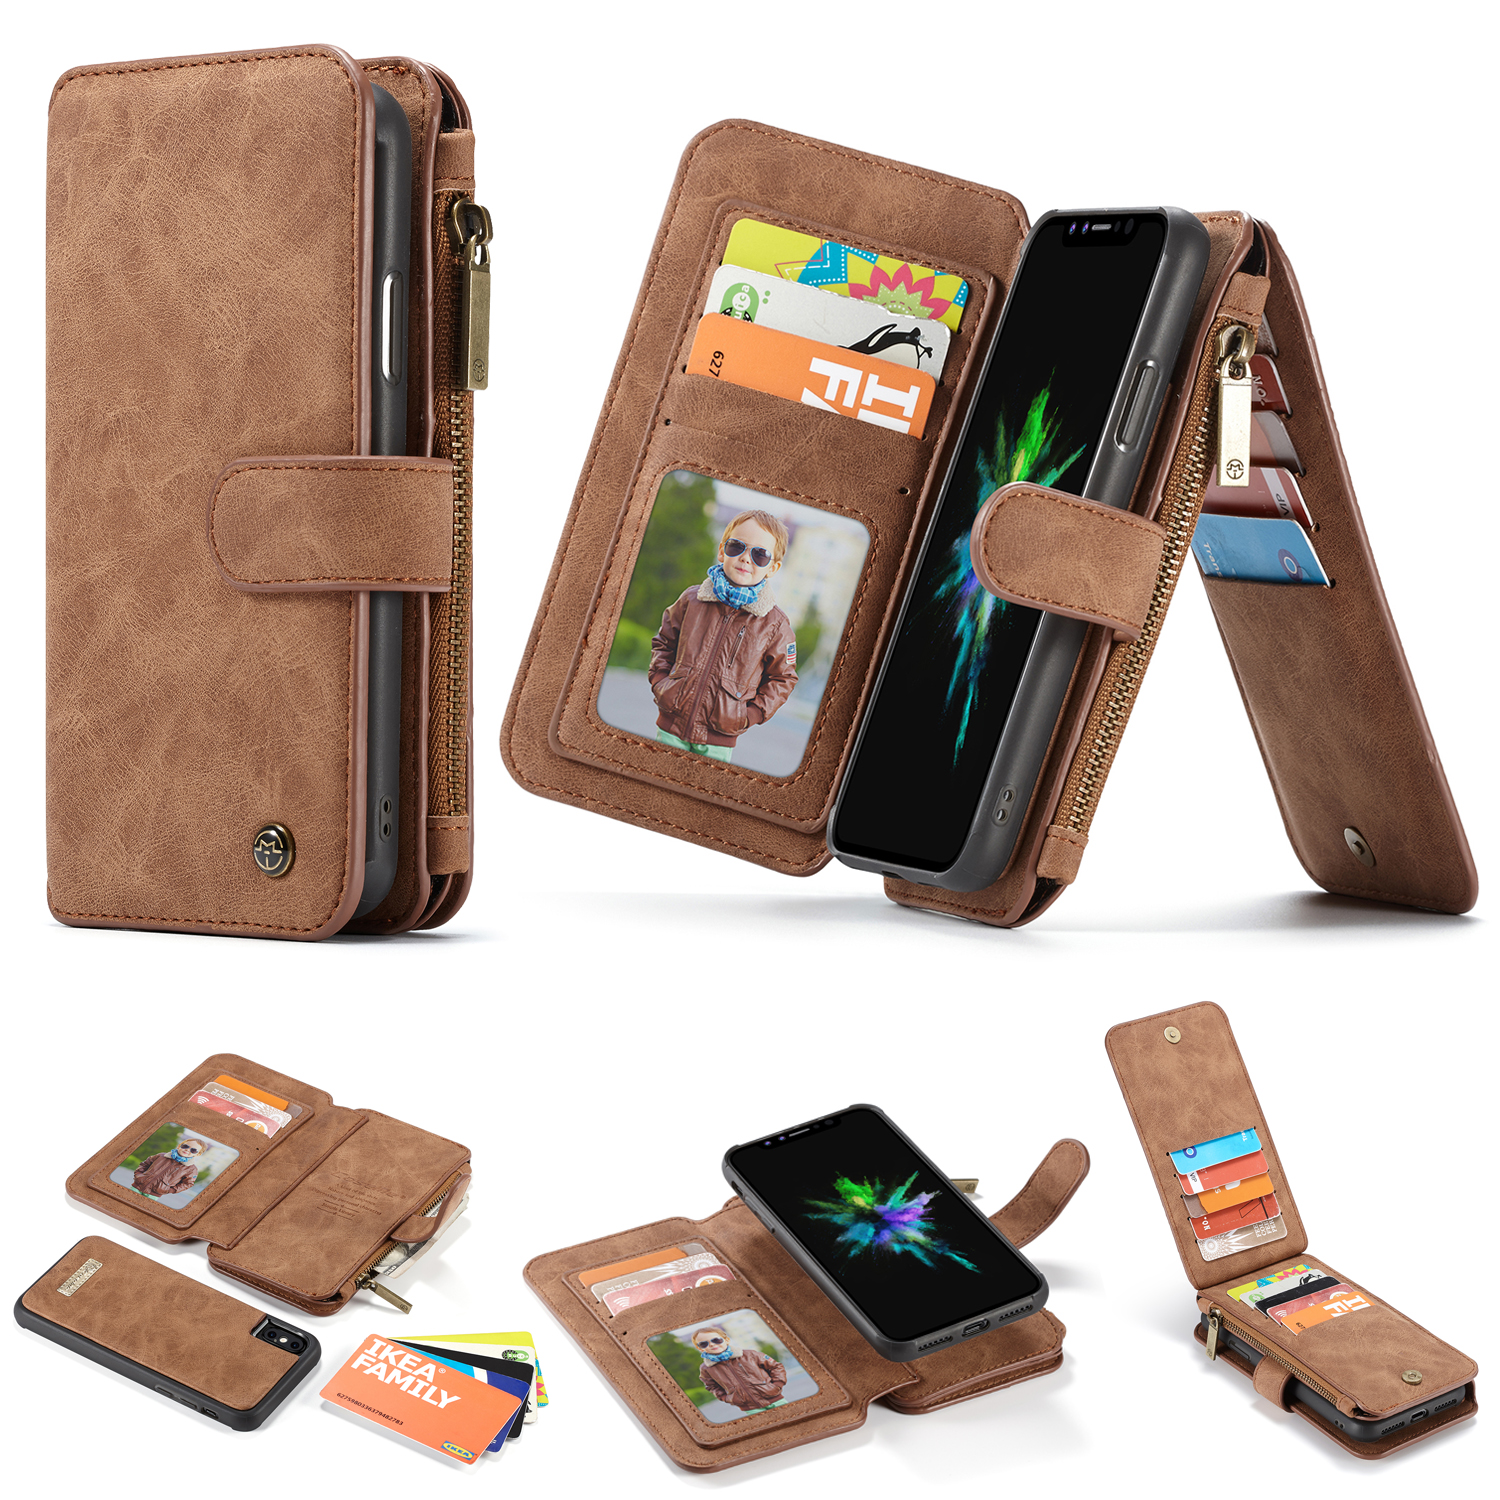 Leather Flip Case Fit for iPhone X Cozy Wallet Cover for iPhone X